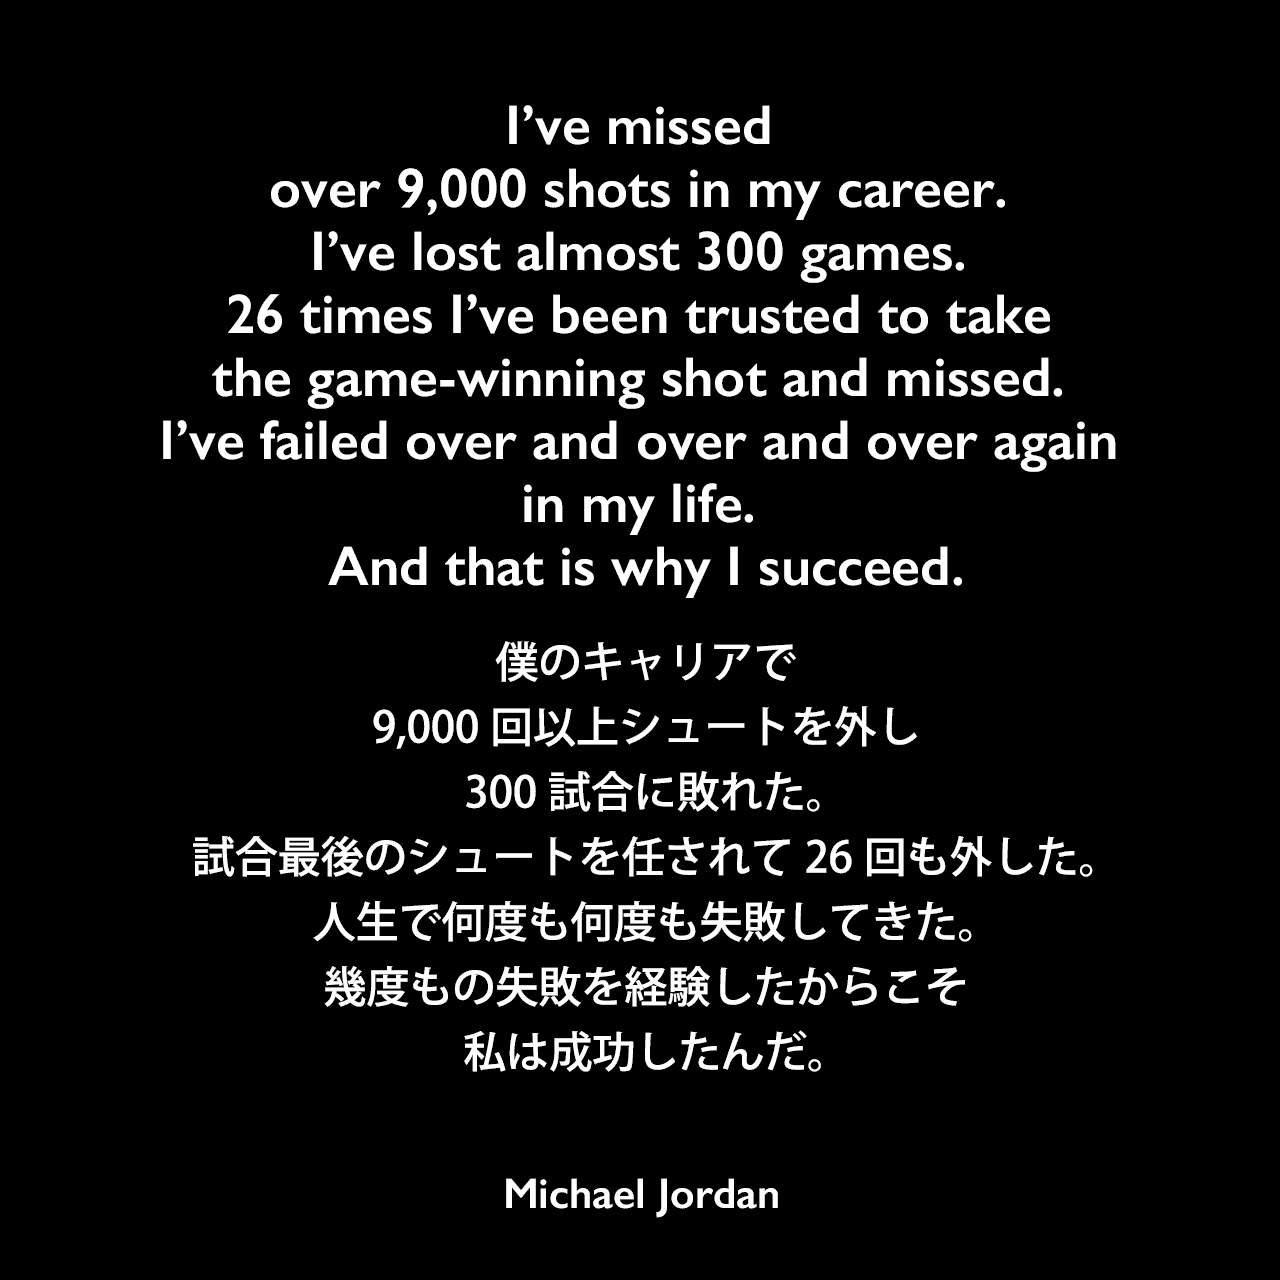 I've missed over 9,000 shots in my career. I've lost almost 300 games. 26 times I've been trusted to take the game-winning shot and missed. I've failed over and over and over again in my life. And that is why I succeed.僕のキャリアで、9,000回以上シュートを外し、300試合に敗れた。試合最後のシュートを任されて26回も外した。人生で何度も何度も失敗してきた。幾度もの失敗を経験したからこそ私は成功したんだ。Michael Jordan